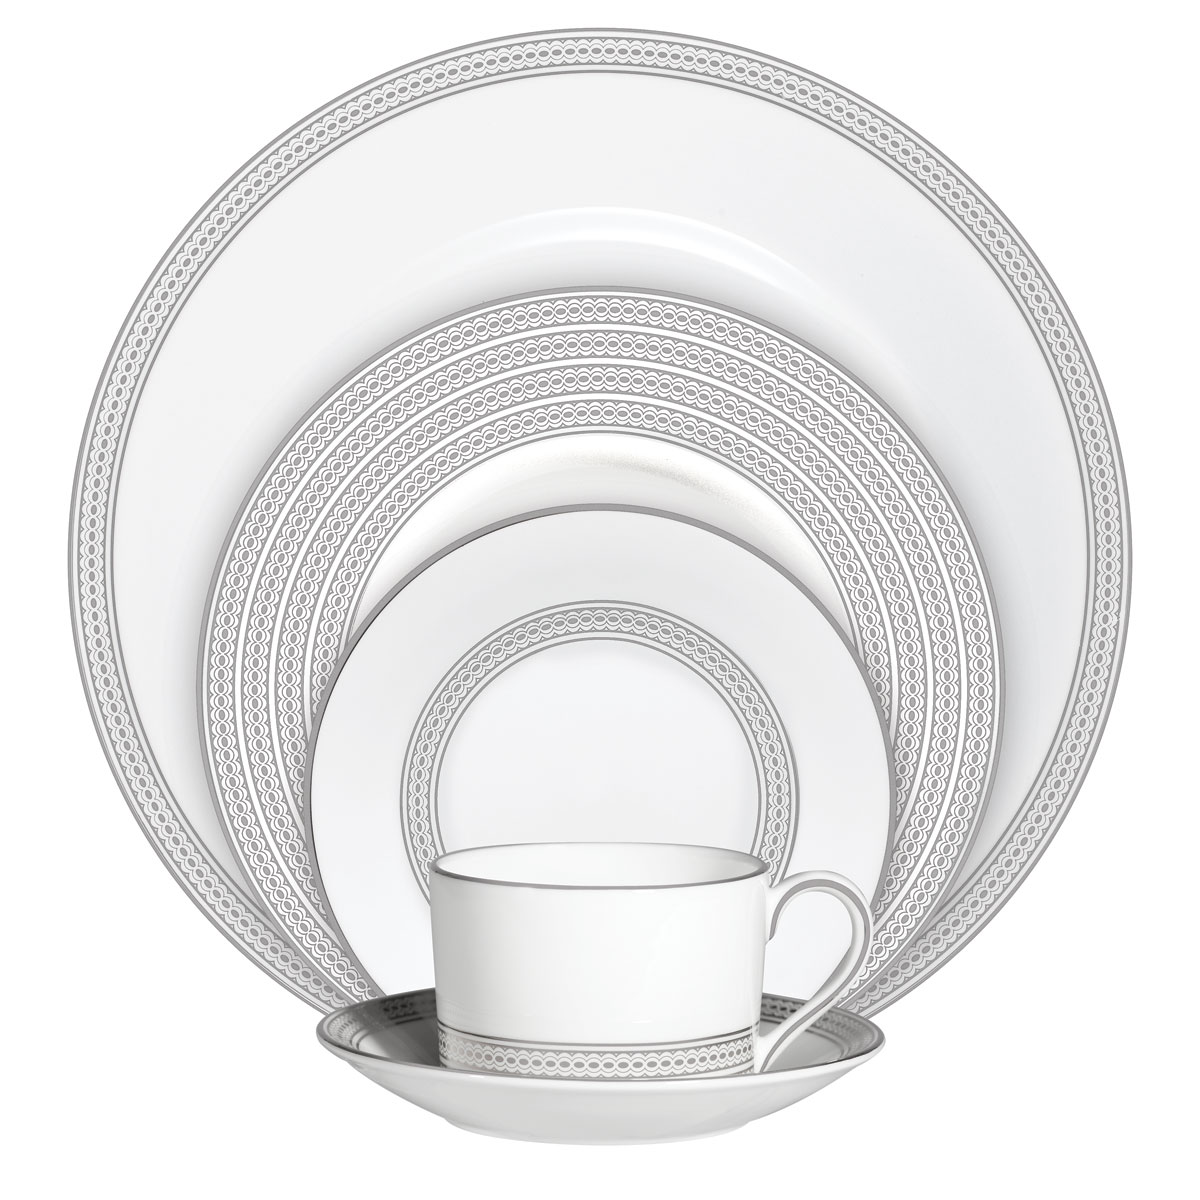 Vera Wang Wedgwood China Moderne, 5 Piece Place Setting